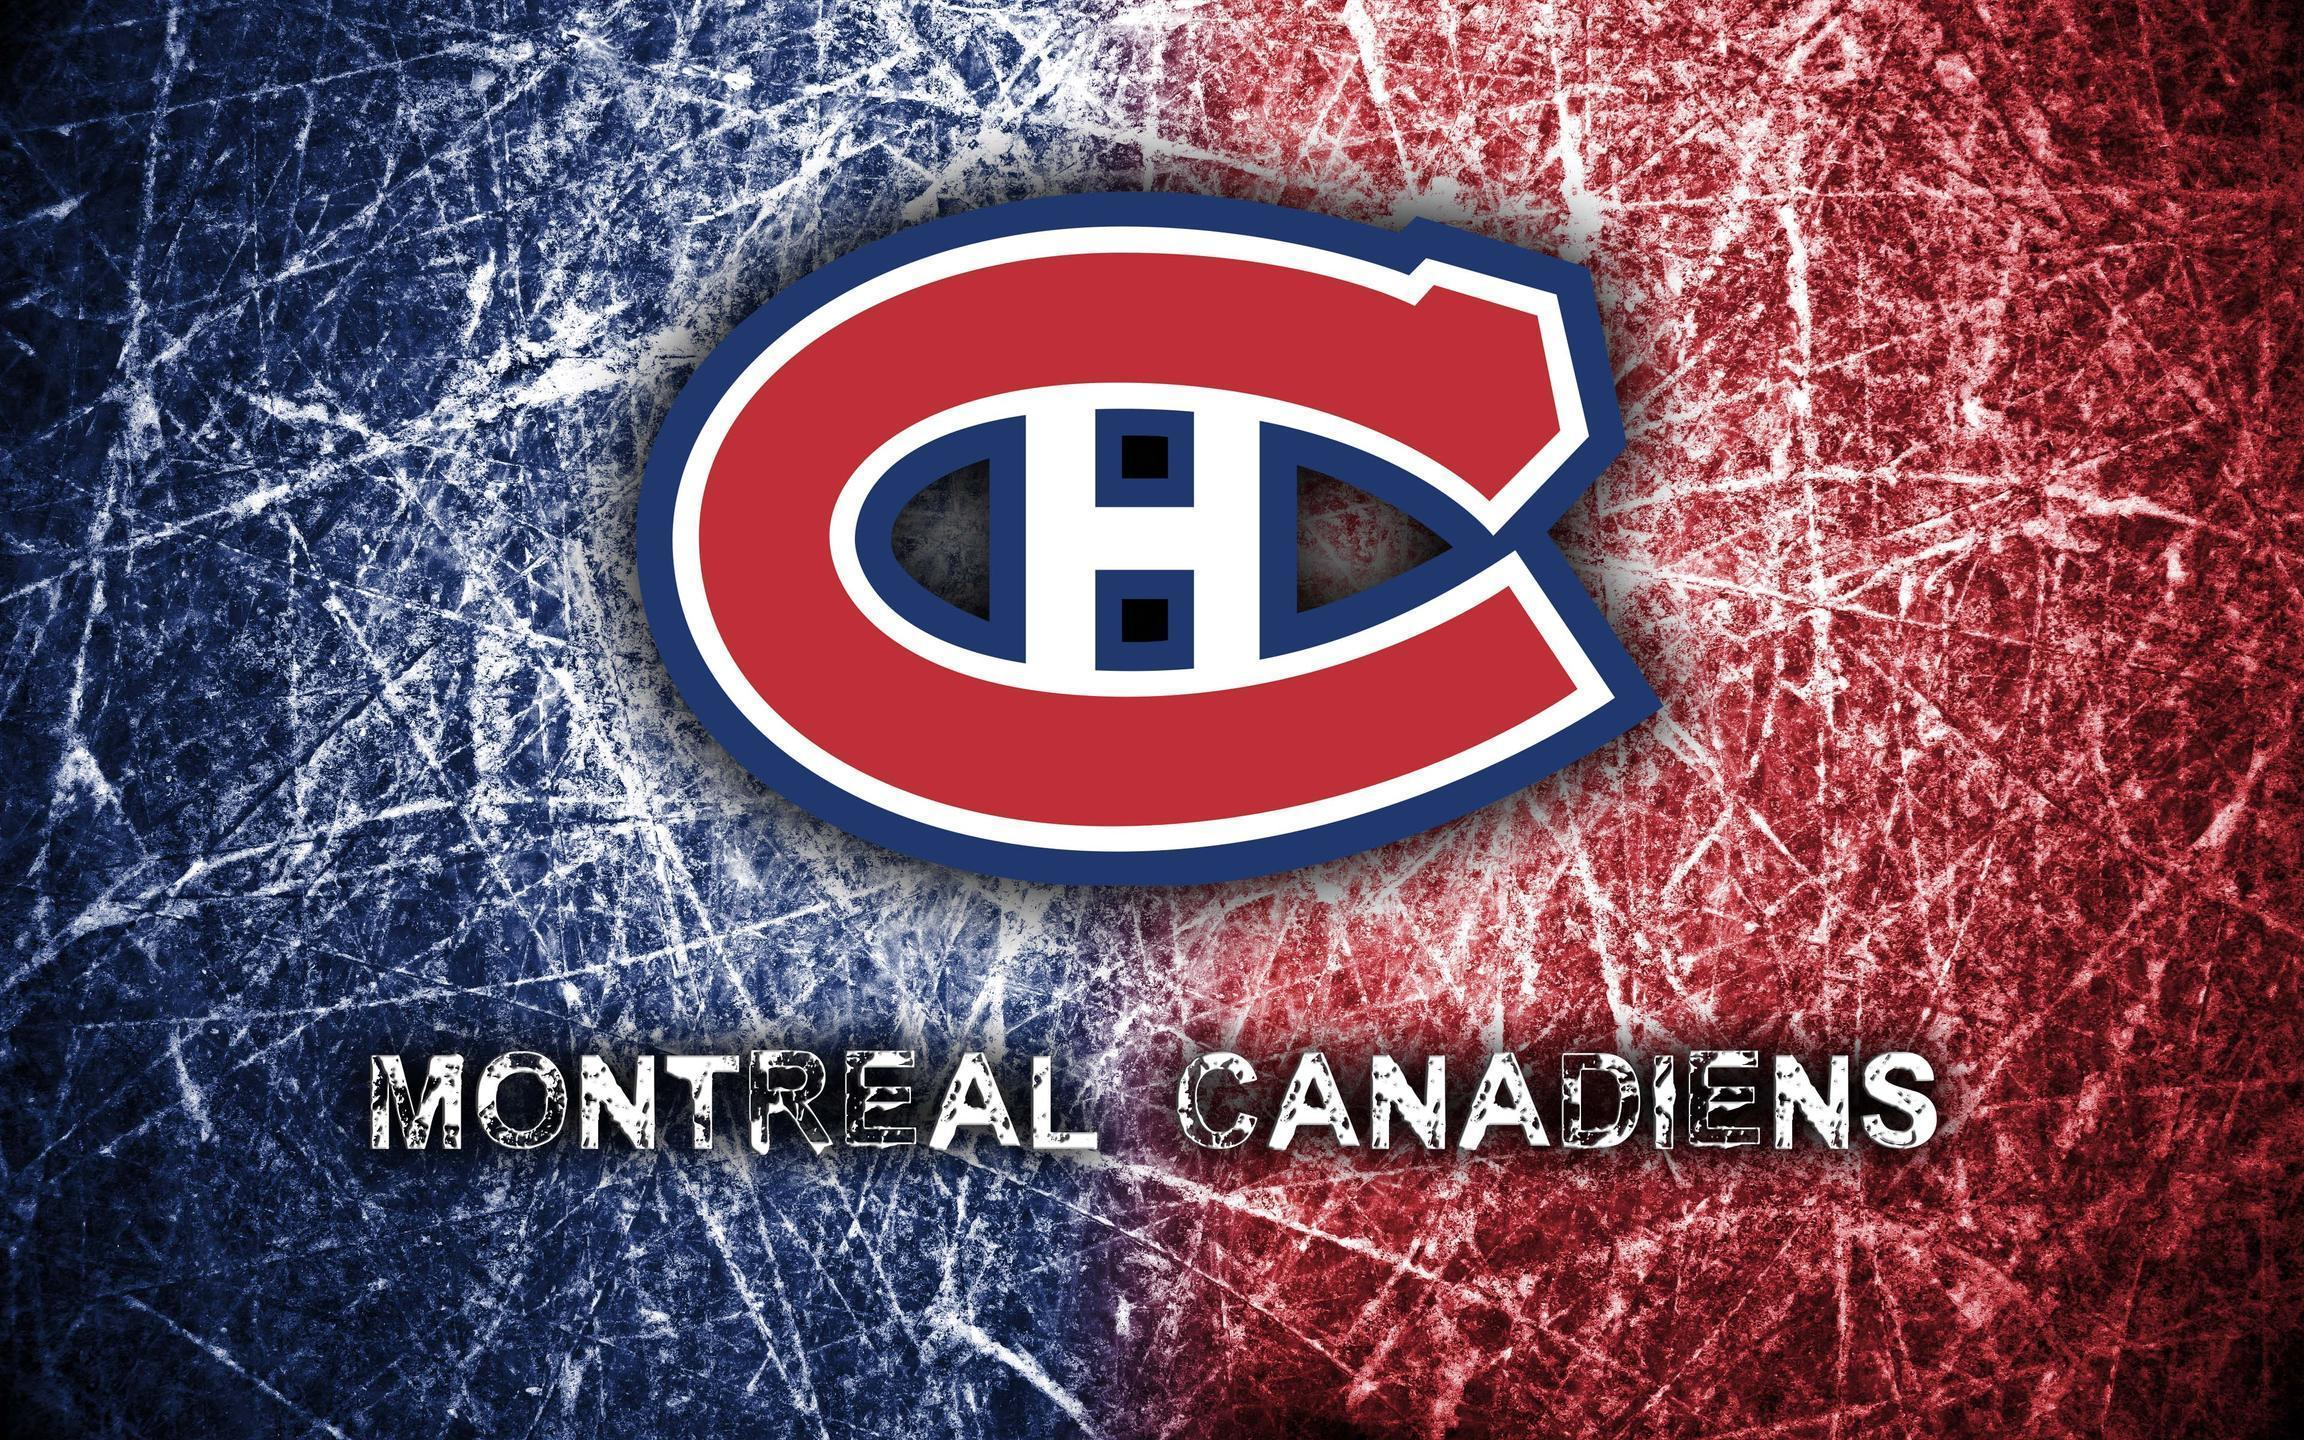 Simple Wallpaper Logo Montreal Canadiens - mDvp2Sw  Graphic_194999.jpg